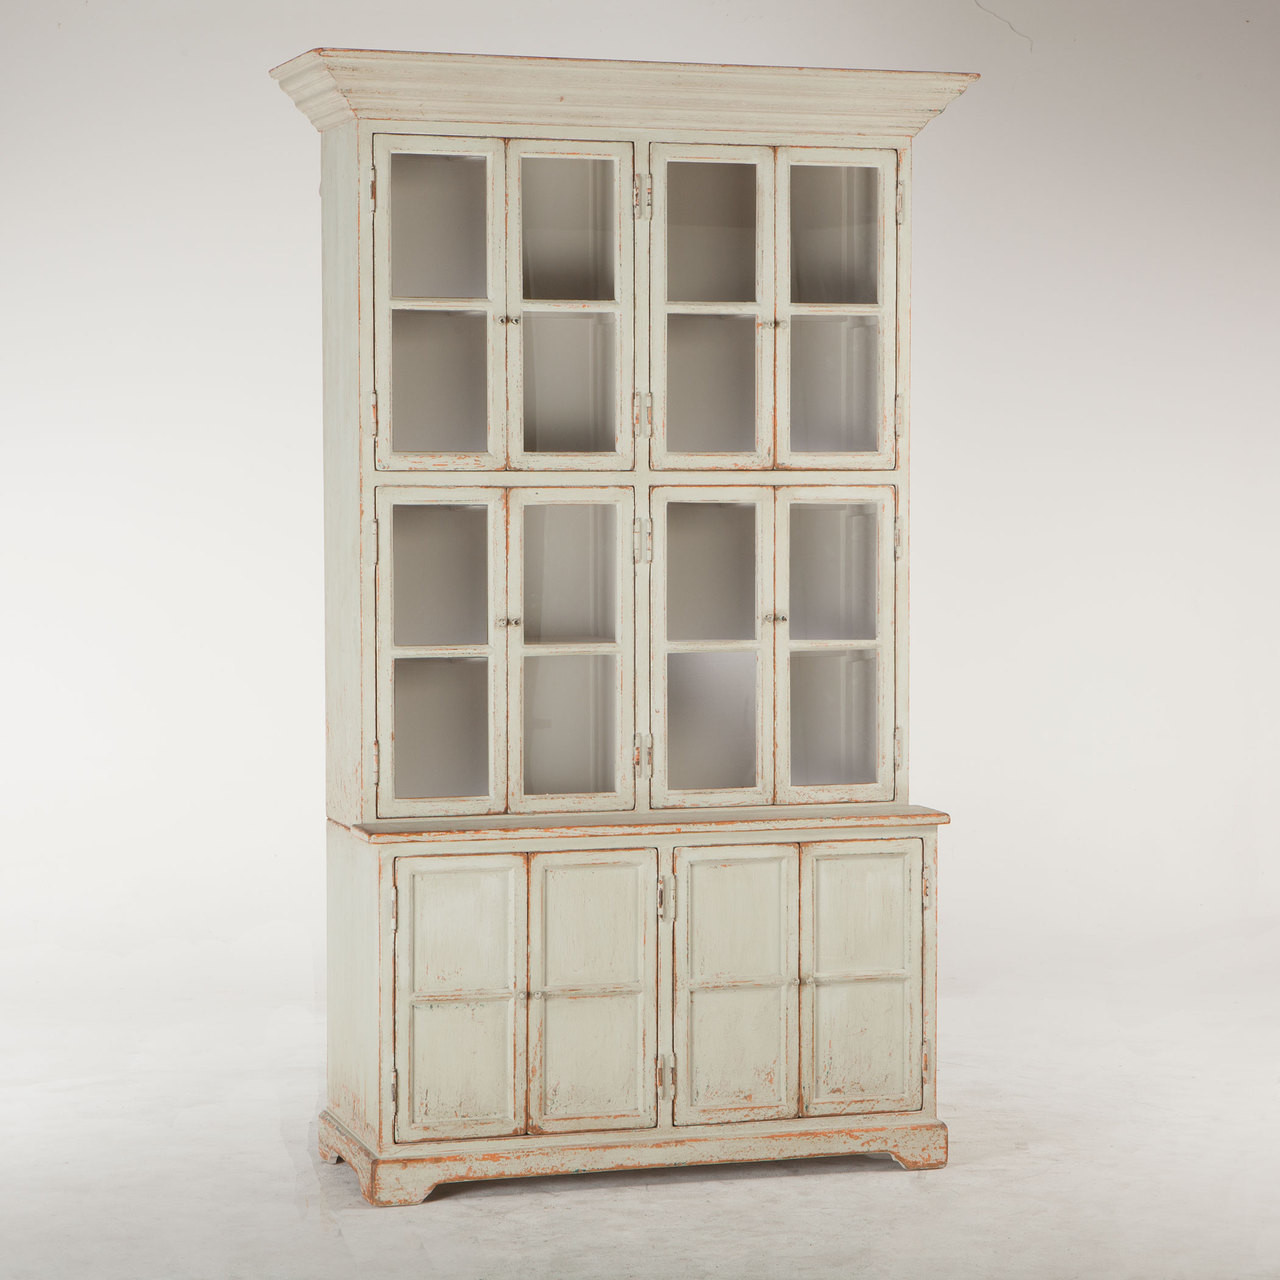 - Vintage Solid Wood China Cabinet Hutch With Glass Doors Zin Home